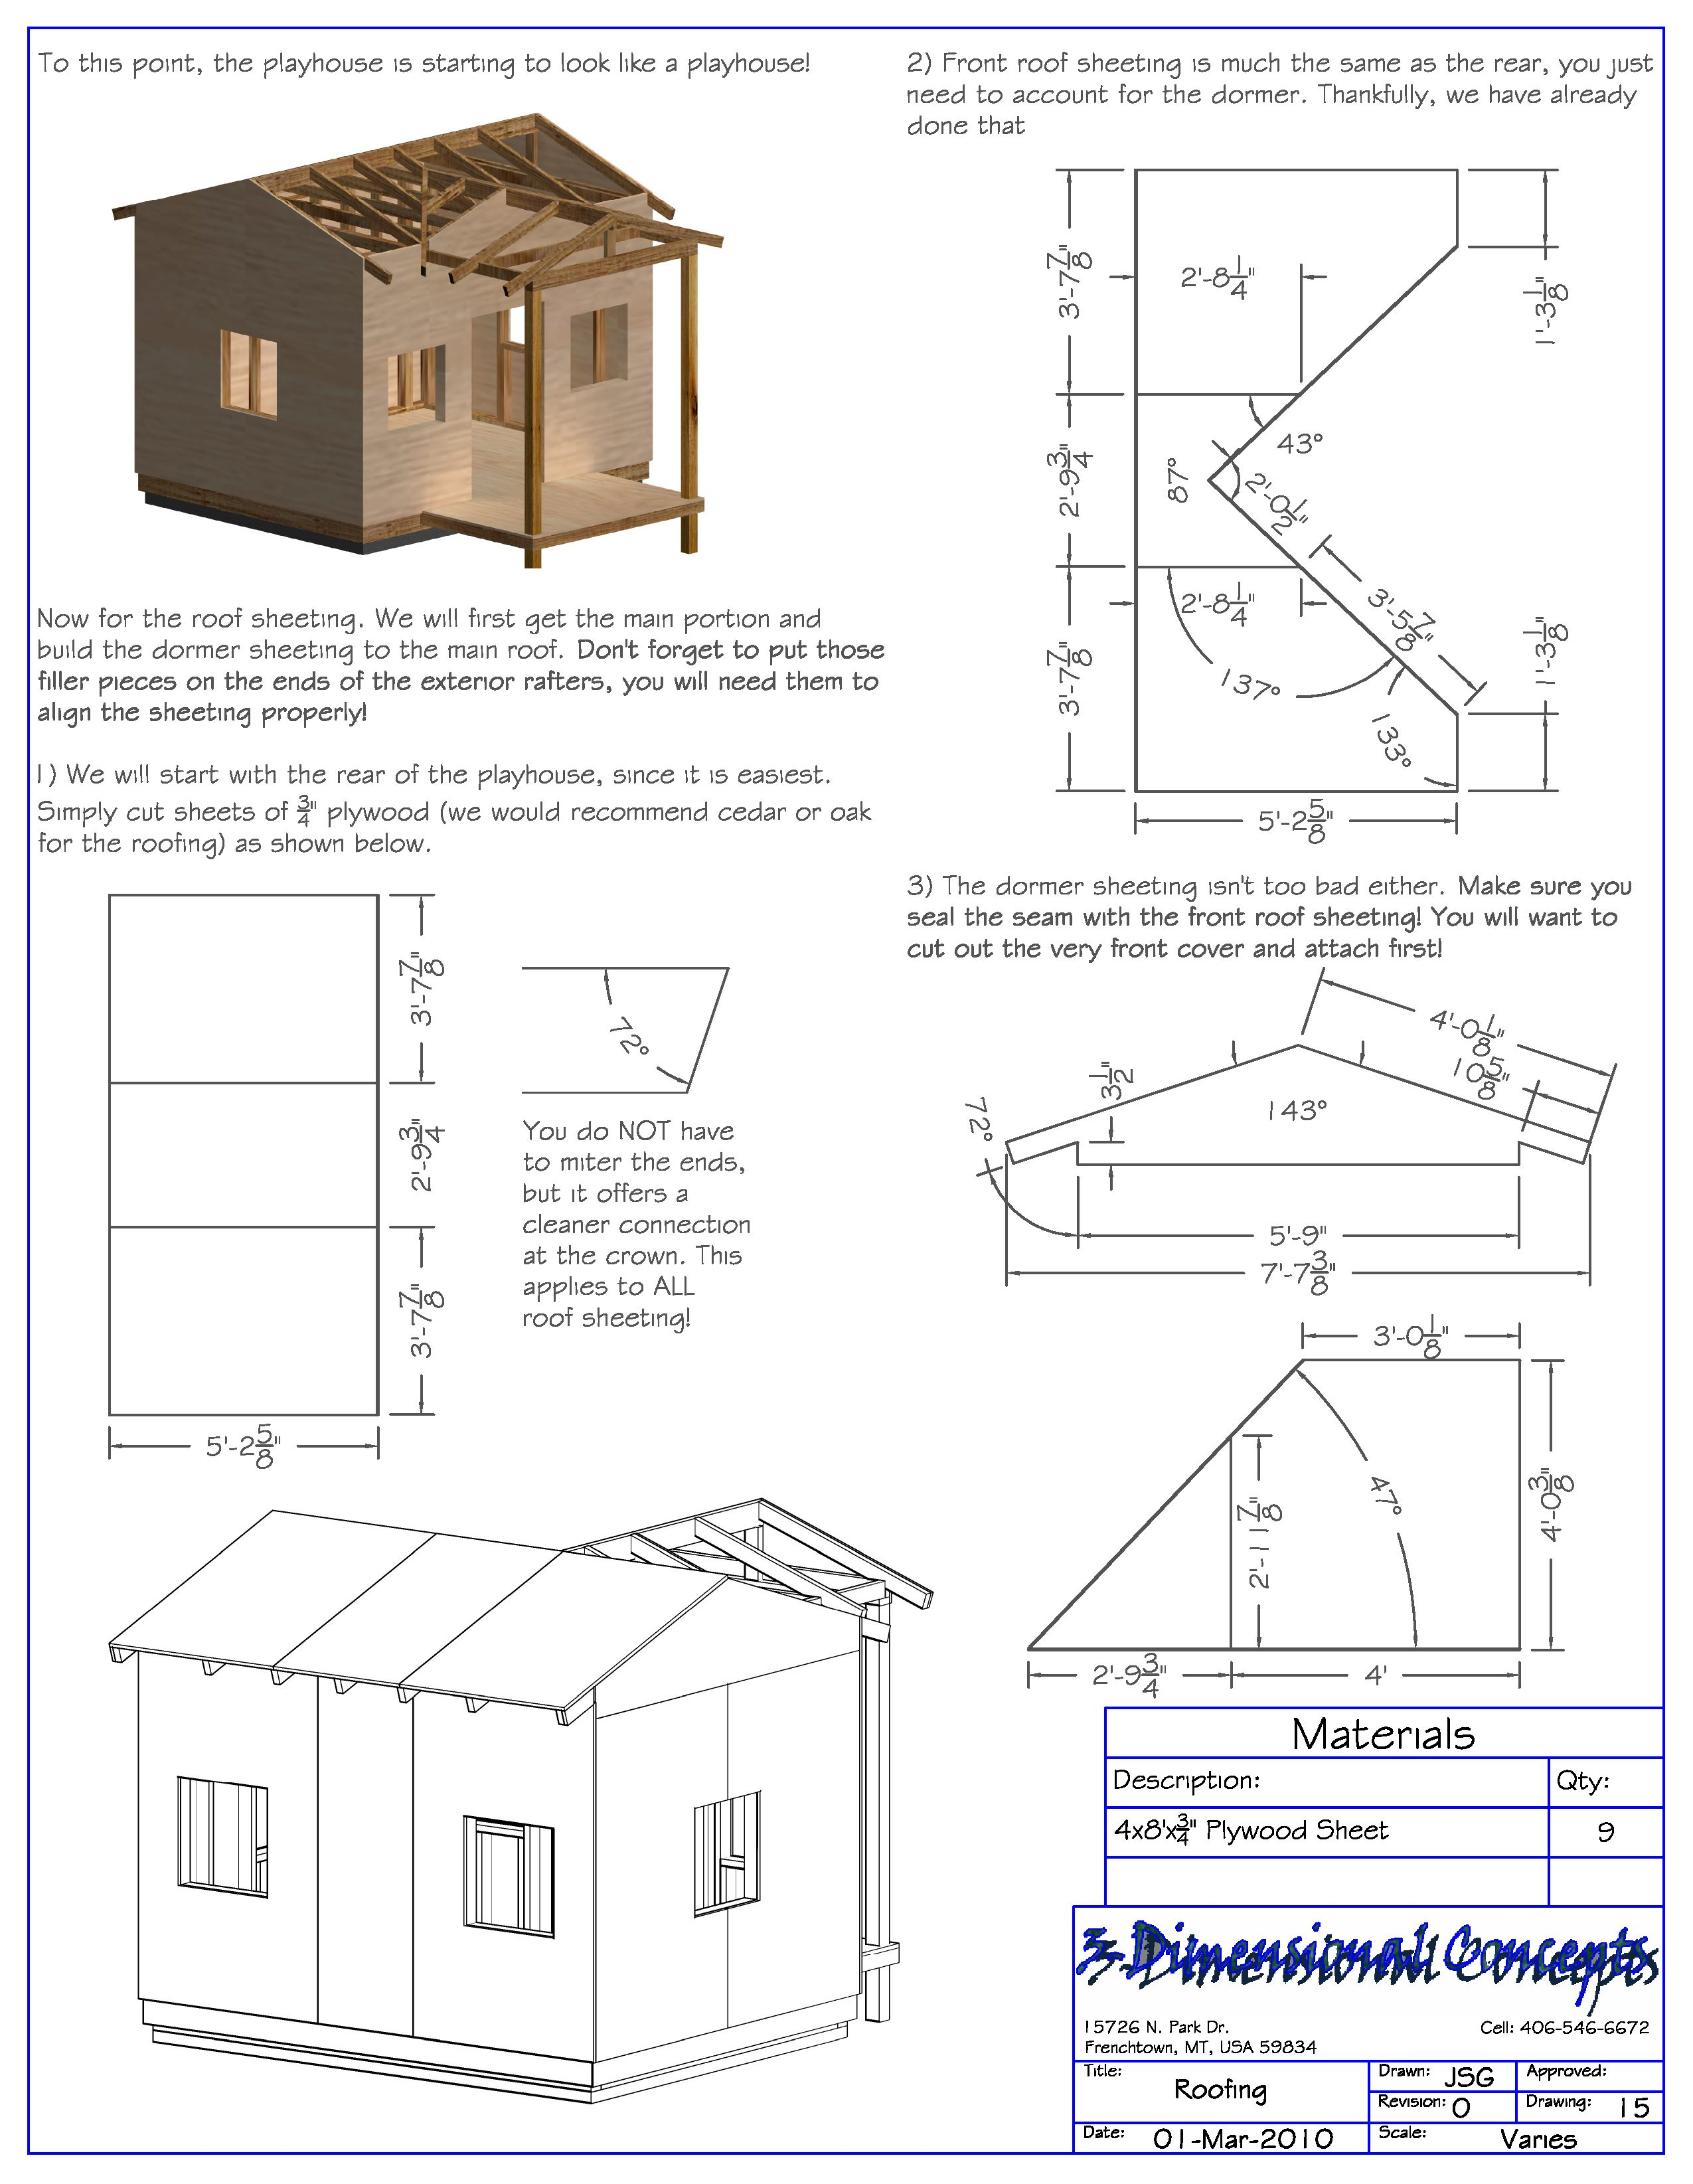 Surprising Three Bedroom House Plans Wendy House Uncategorized Wooden Wendy House Plan Singular For Stunning Free Play Houses Playhouse Plans Wood Playhouse